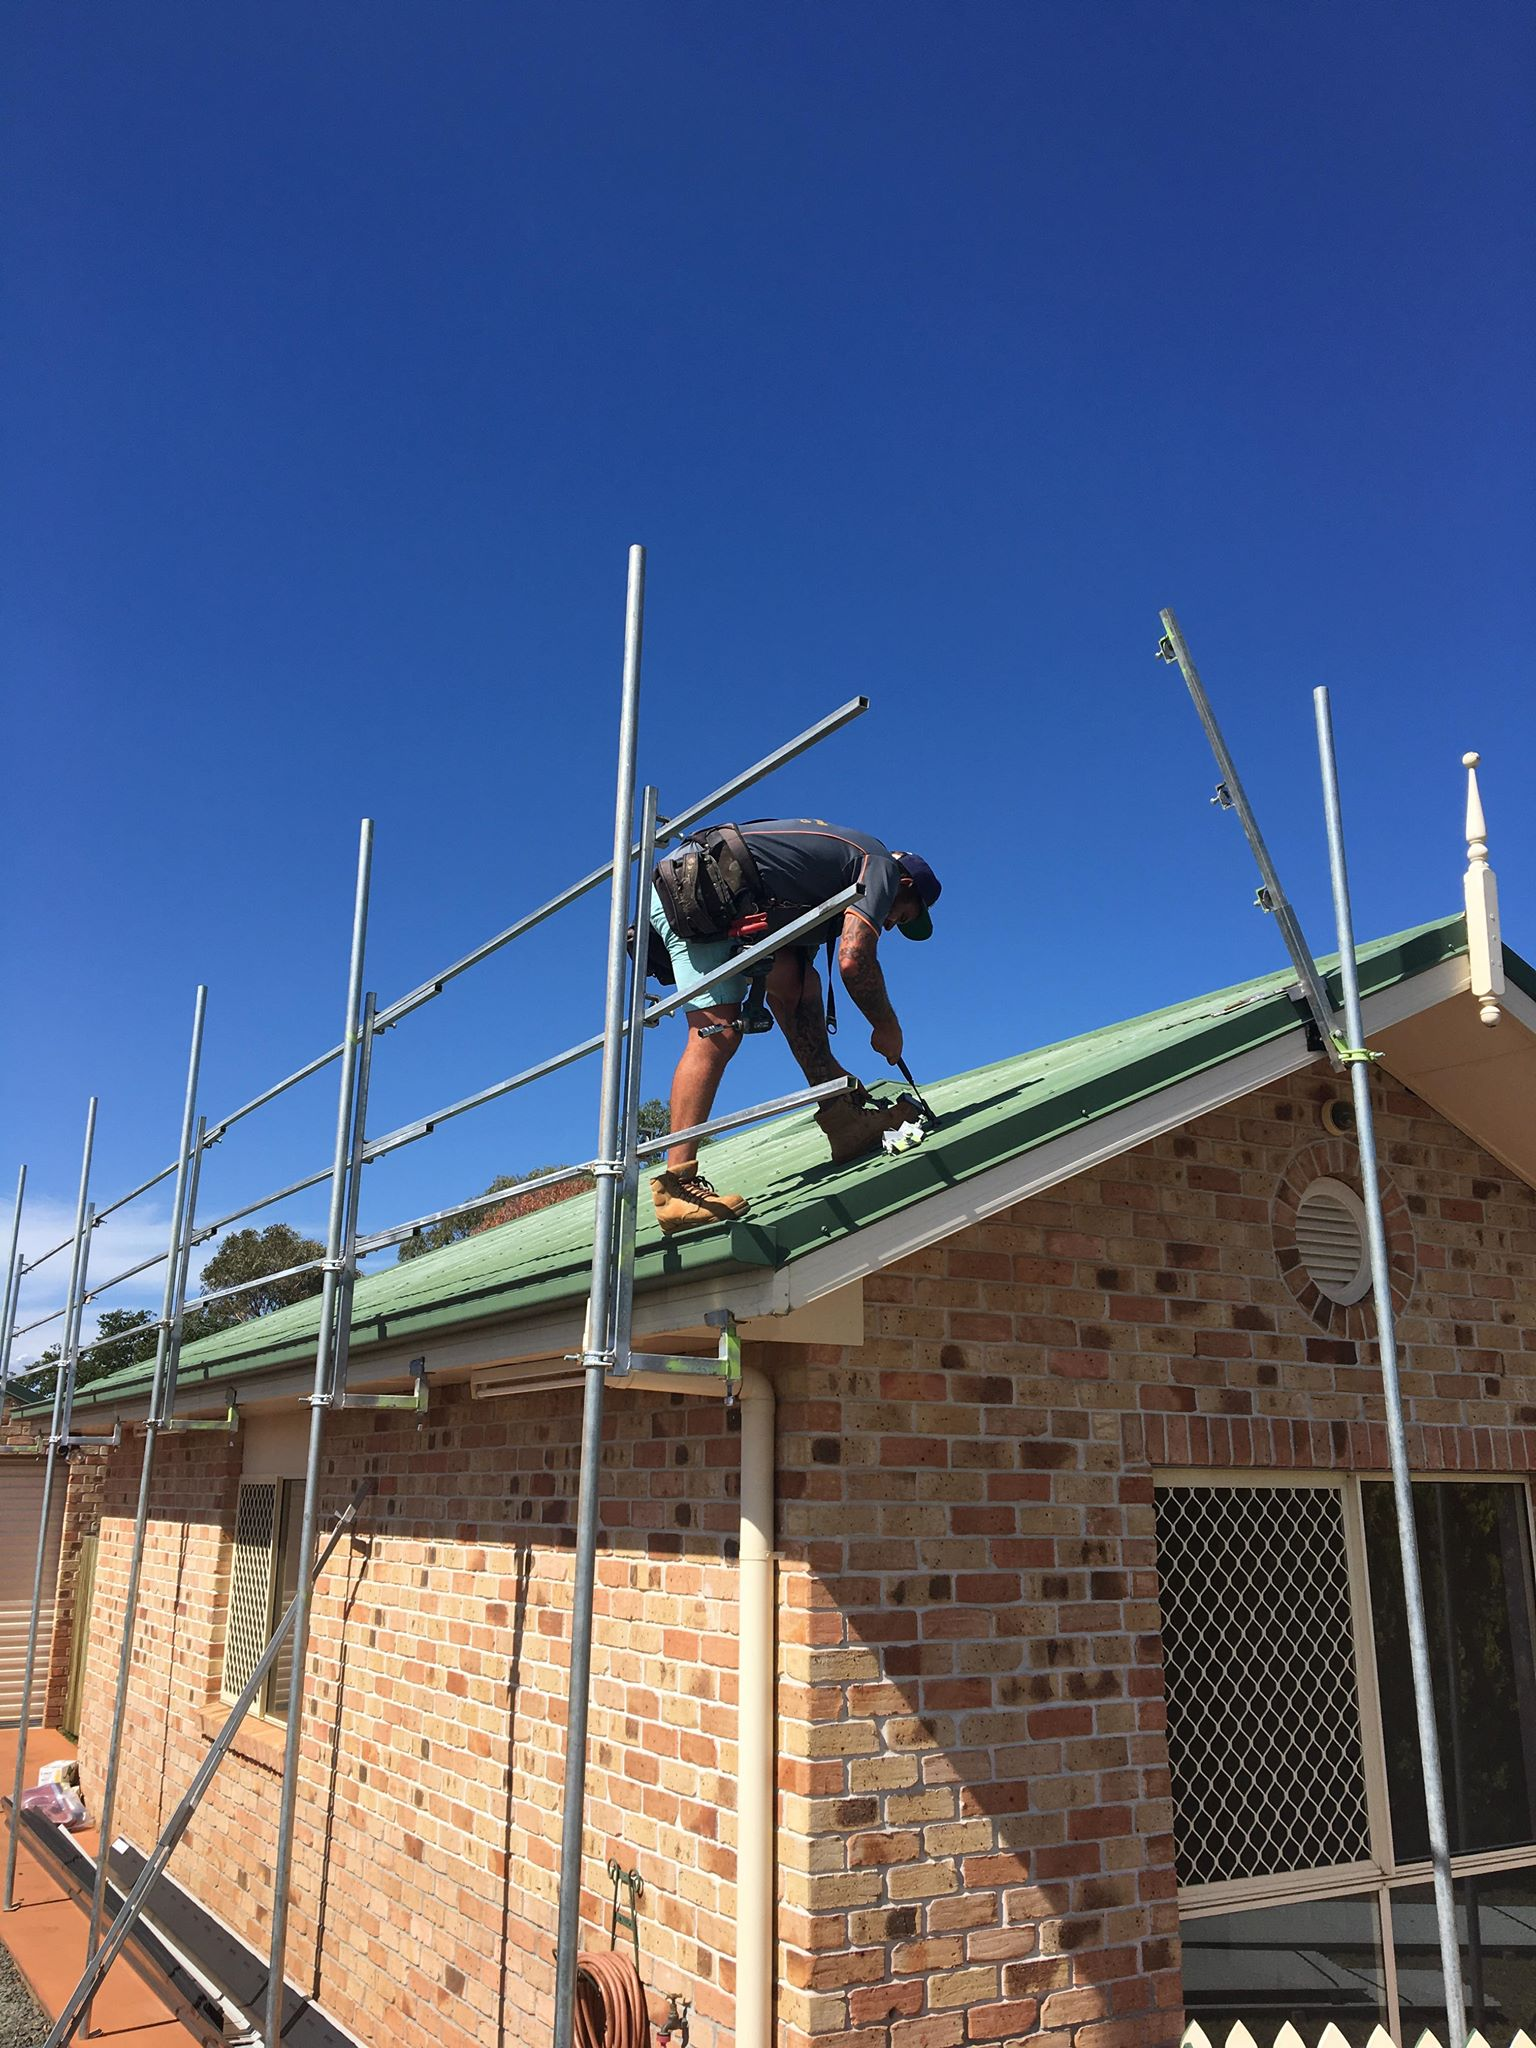 Rubiks Roofing – Professional repairs that last